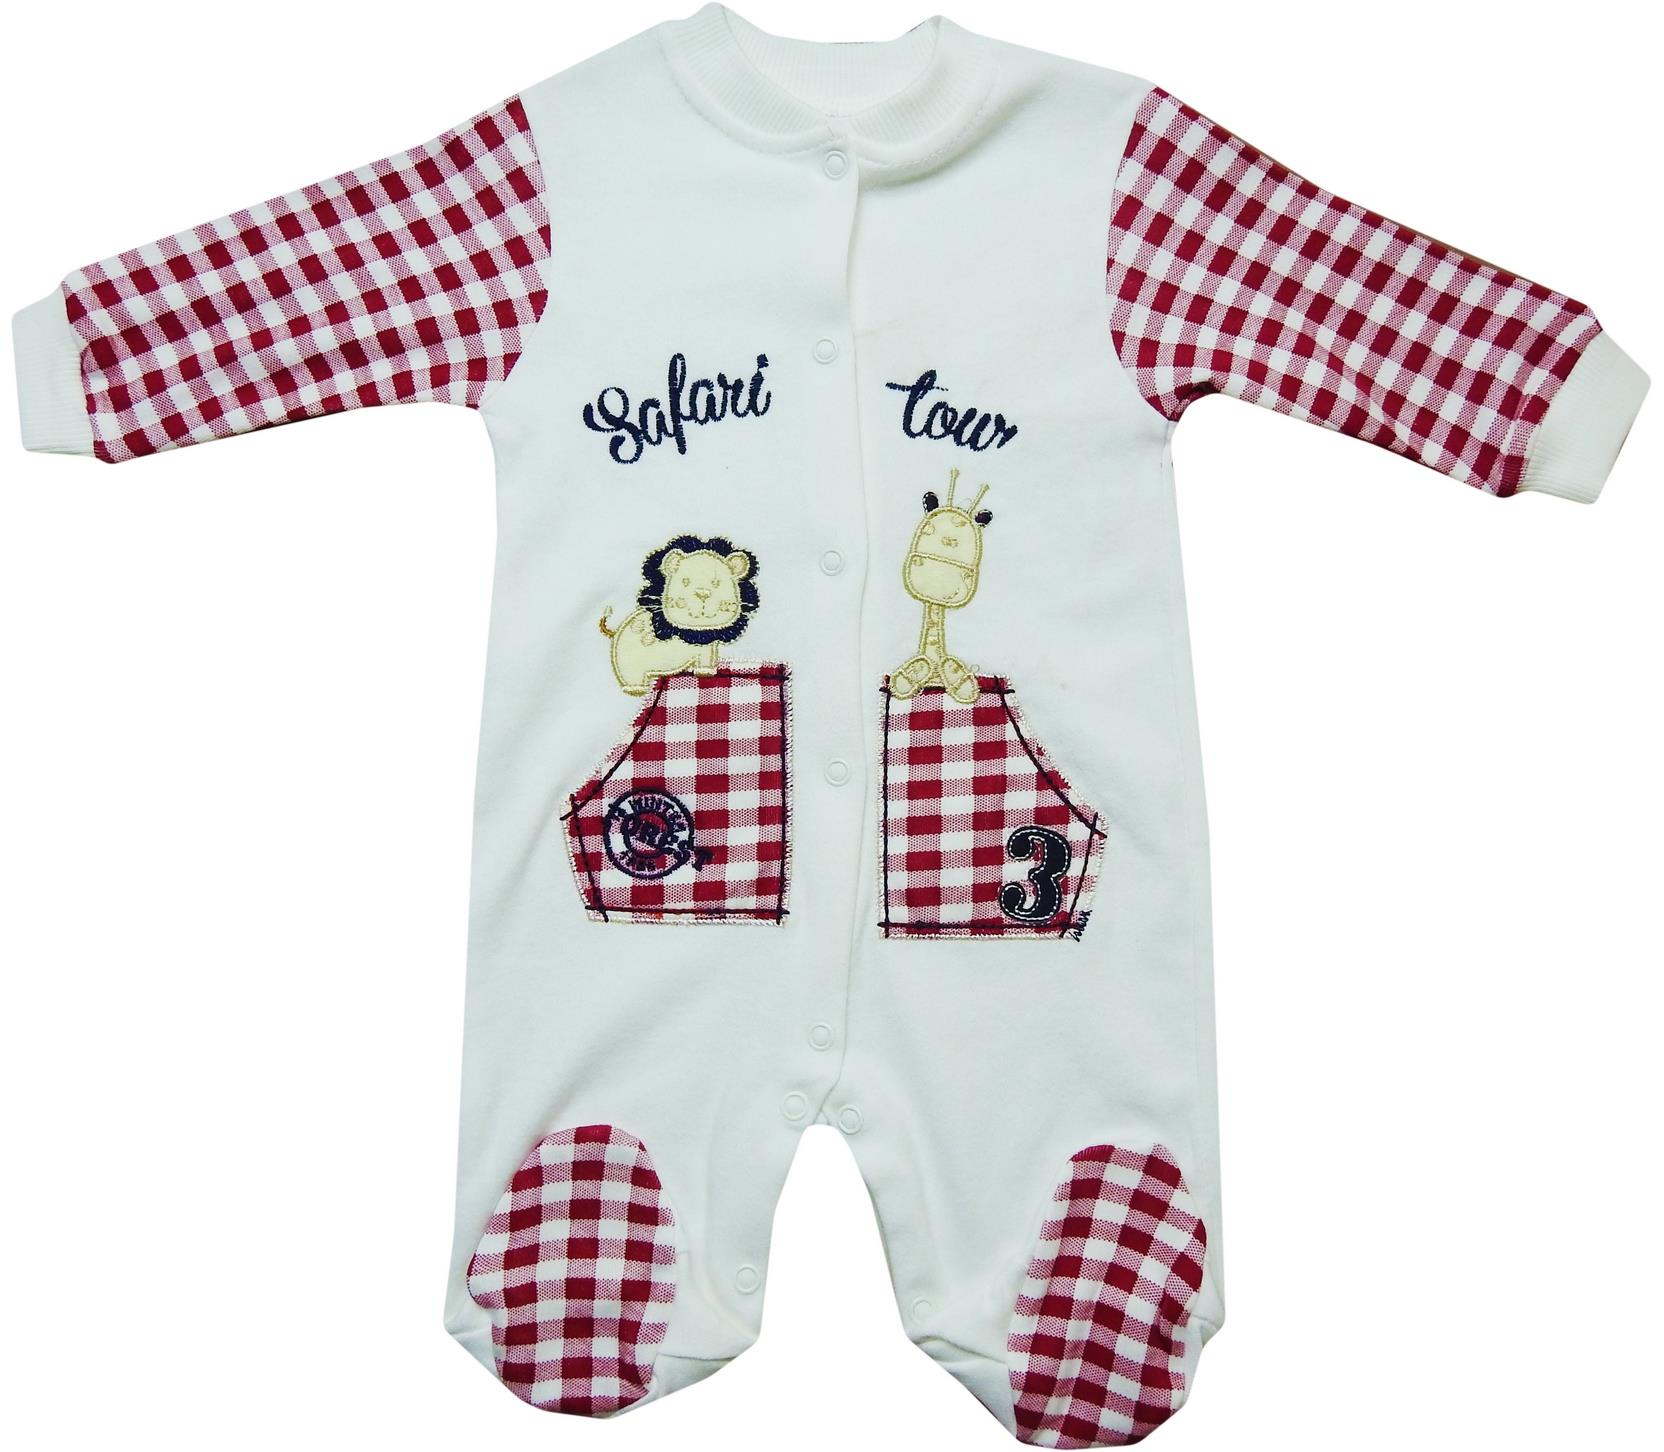 997 Wholesale chequered romper for boy baby clothes 3 6 9 12 month